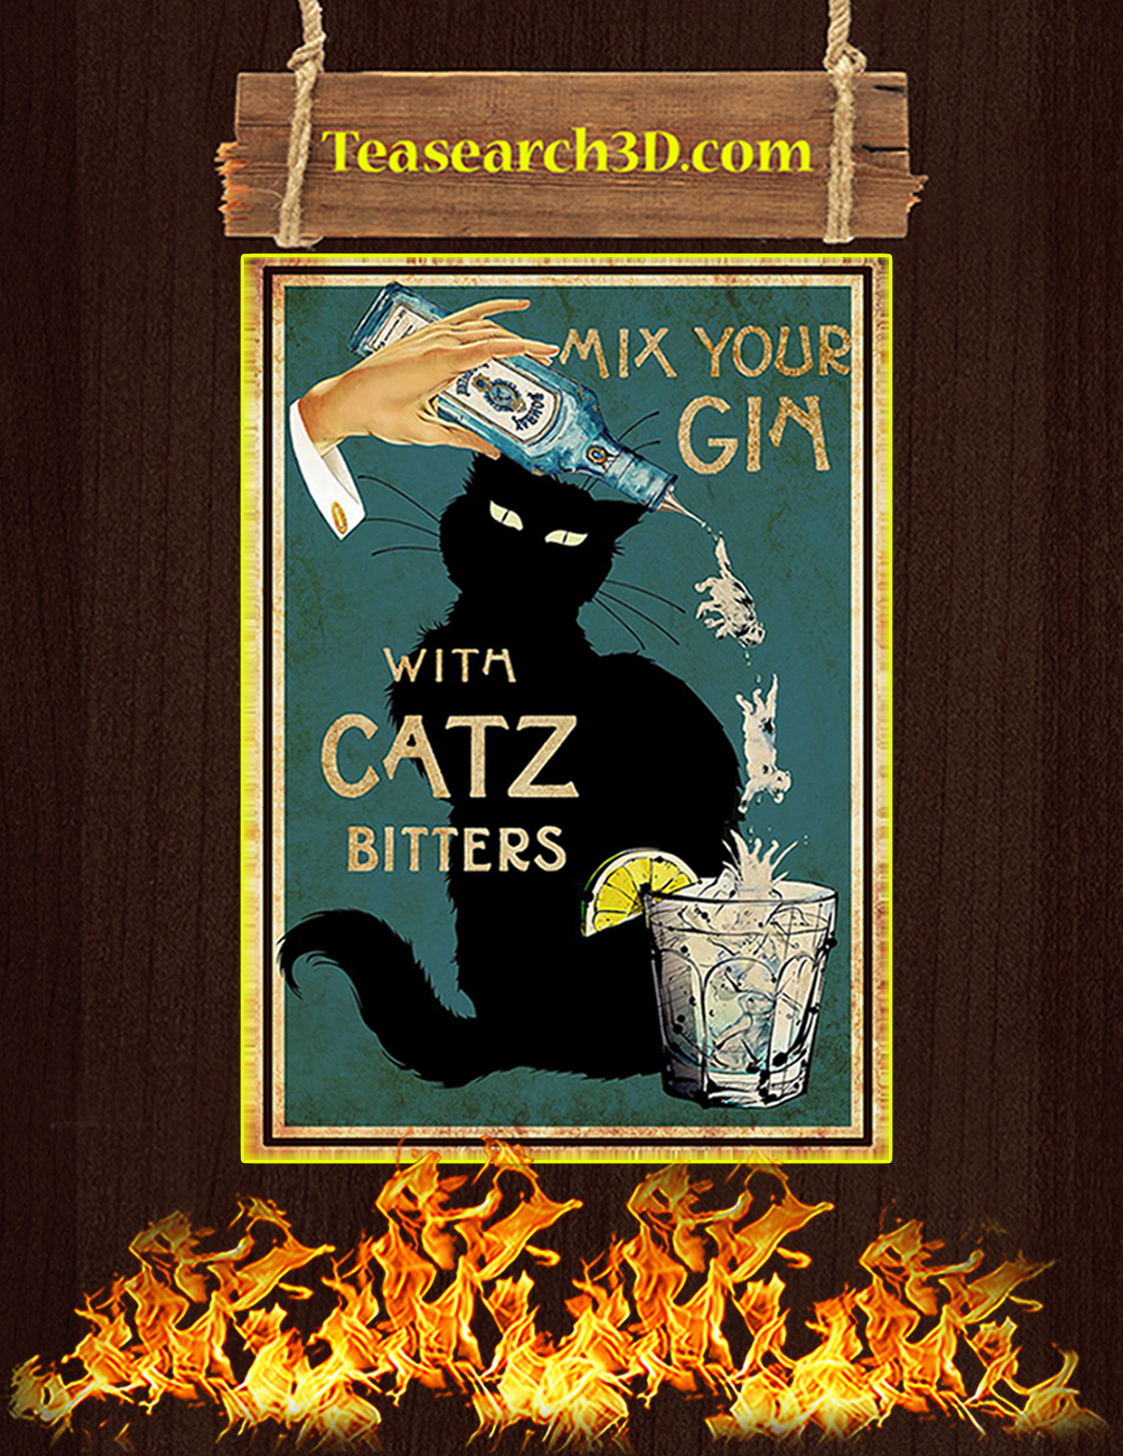 Liquor Mix your gin with catz bitters poster A3